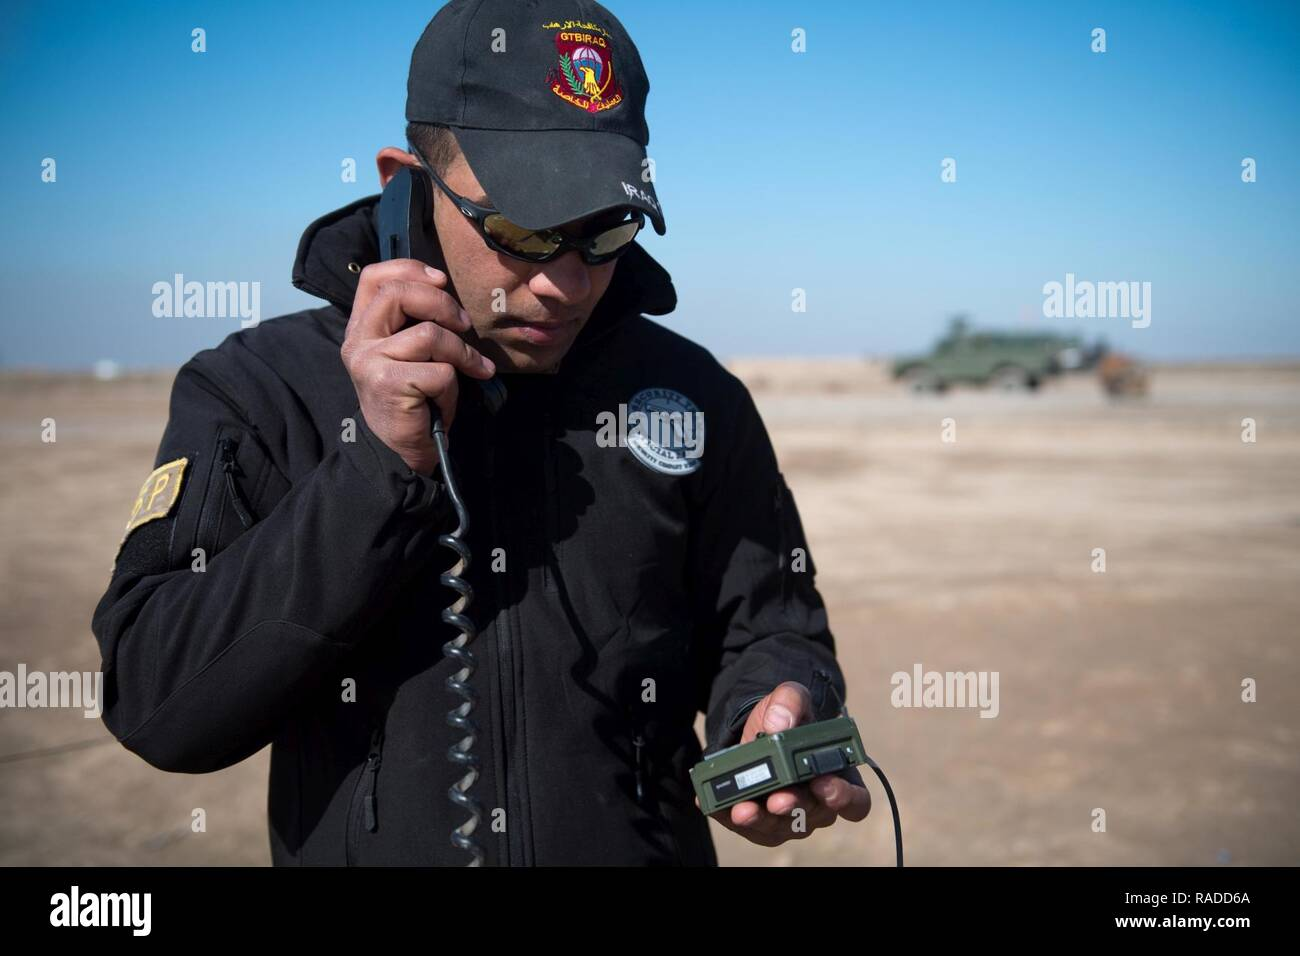 An Iraqi Counter-Terrorism Service trainee conducts high frequency communications training near Baghdad, Iraq, Jan. 30, 2017. ICTS is Iraq's elite counter-terrorism force and has proven to be an effective fighting force against ISIL. This training is part of the overall Combined Joint Task Force – Operation Inherent Resolve building partner capacity mission to increase the capabilities of partnered forces fighting ISIL. CJTF-OIR is the global Coalition to defeat ISIL in Iraq and Syria. - Stock Image